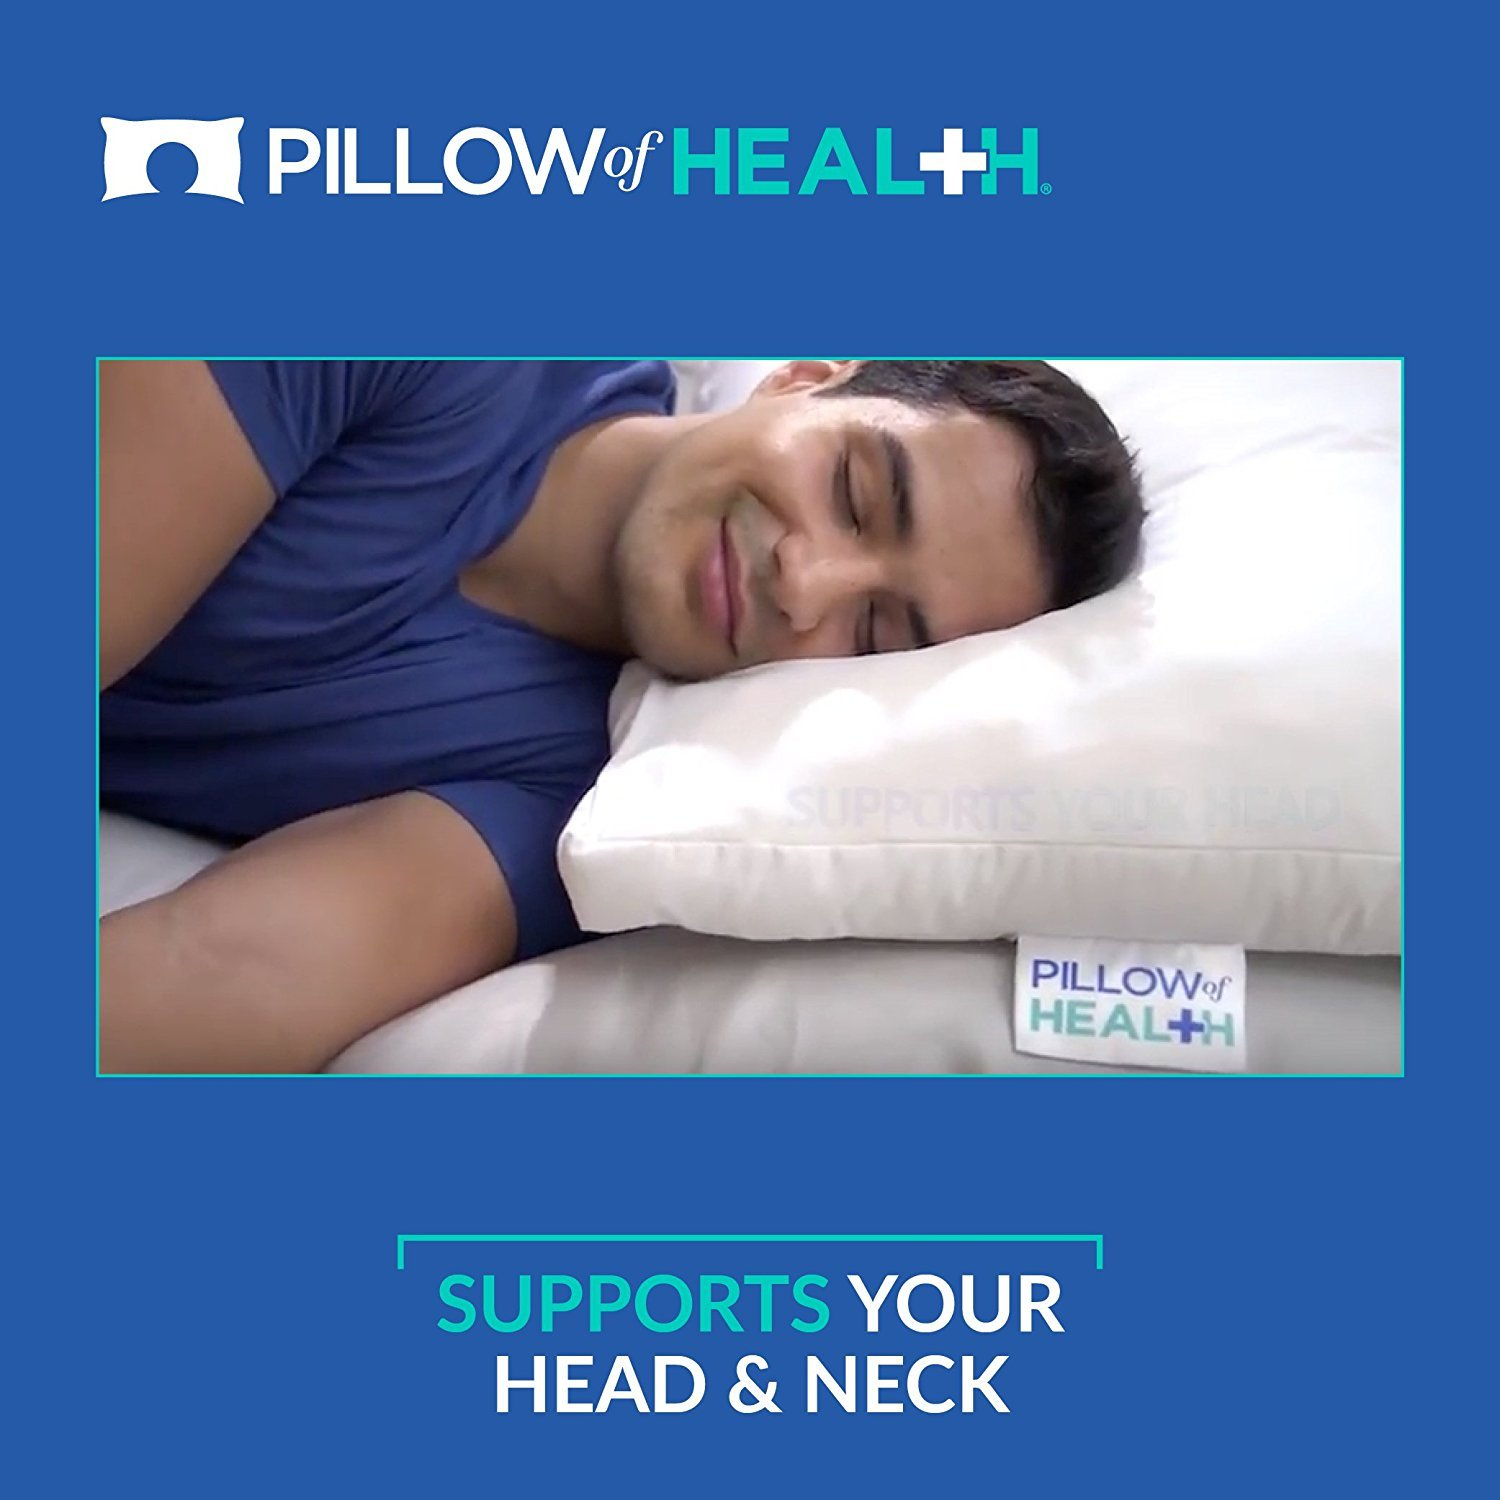 PILLOW of HEALTH | Luxury, Customizable, Therapeutic Pillow For Better Sleep | Patented Adjustable Design | Antimicrobial, Hypoallergenic, Dust Mite Resistant | Made in America - King 2 Pack by The Pillow of Health (Image #7)